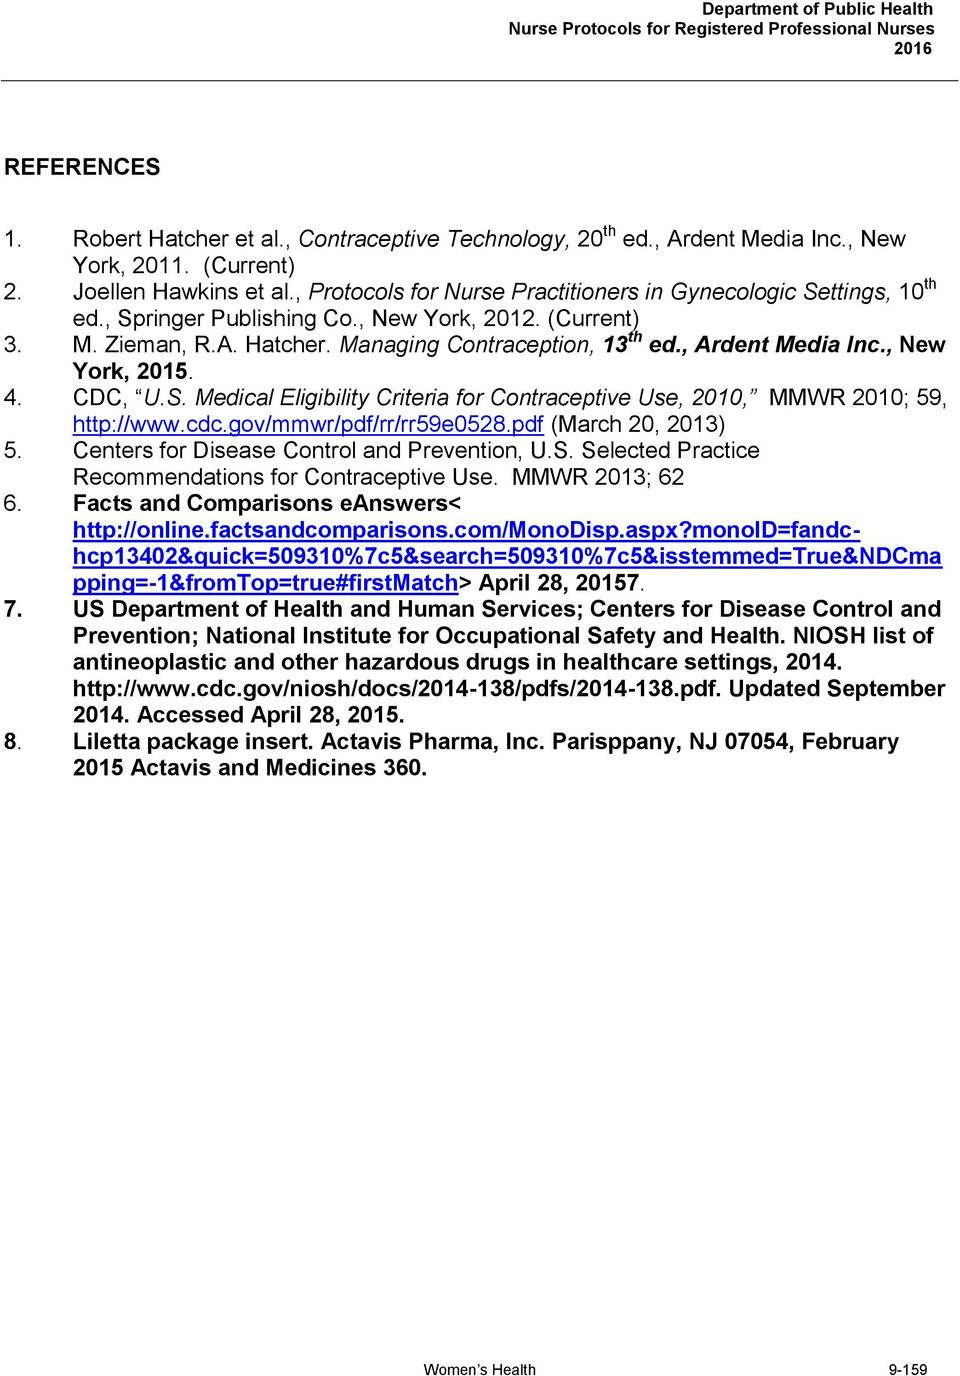 , Ardent Media Inc., New York, 2015. 4. CDC, U.S. Medical Eligibility Criteria for Contraceptive Use, 2010, MMWR 2010; 59, http://www.cdc.gov/mmwr/pdf/rr/rr59e0528.pdf (March 20, 2013) 5.